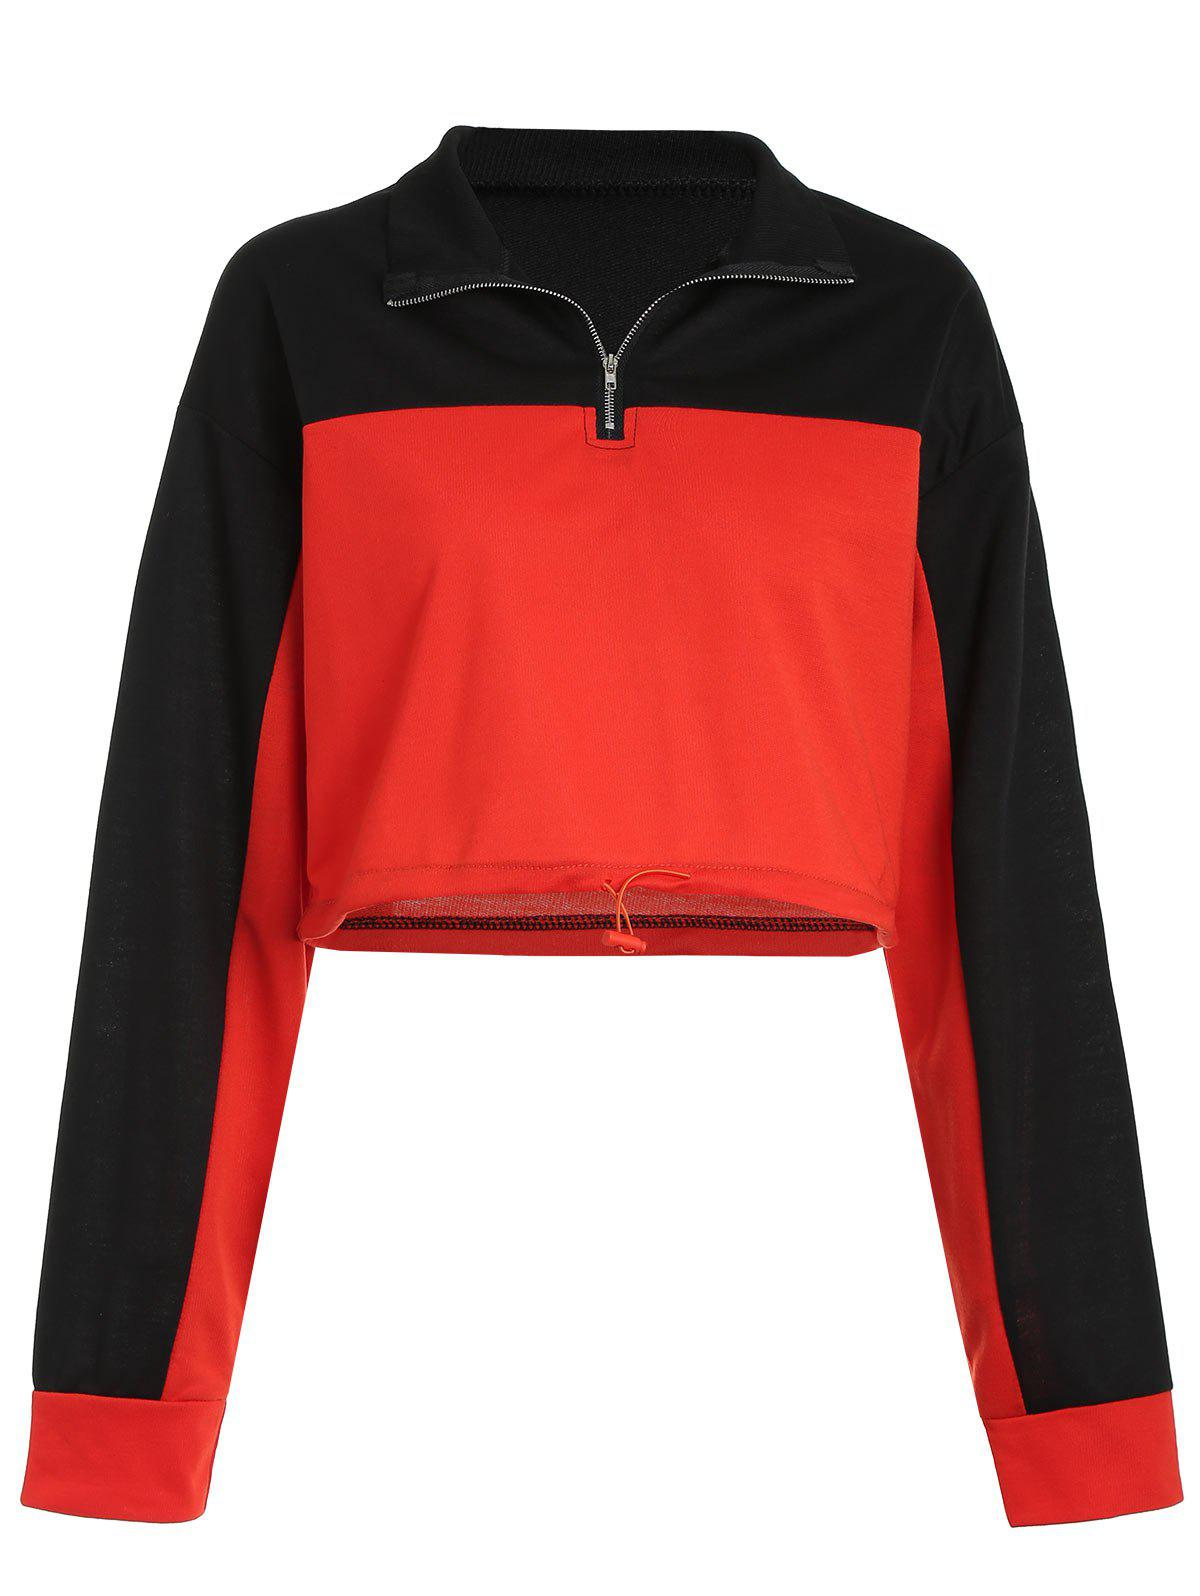 Short Contrast Sweatshirt with Half Zipper - multicolor L